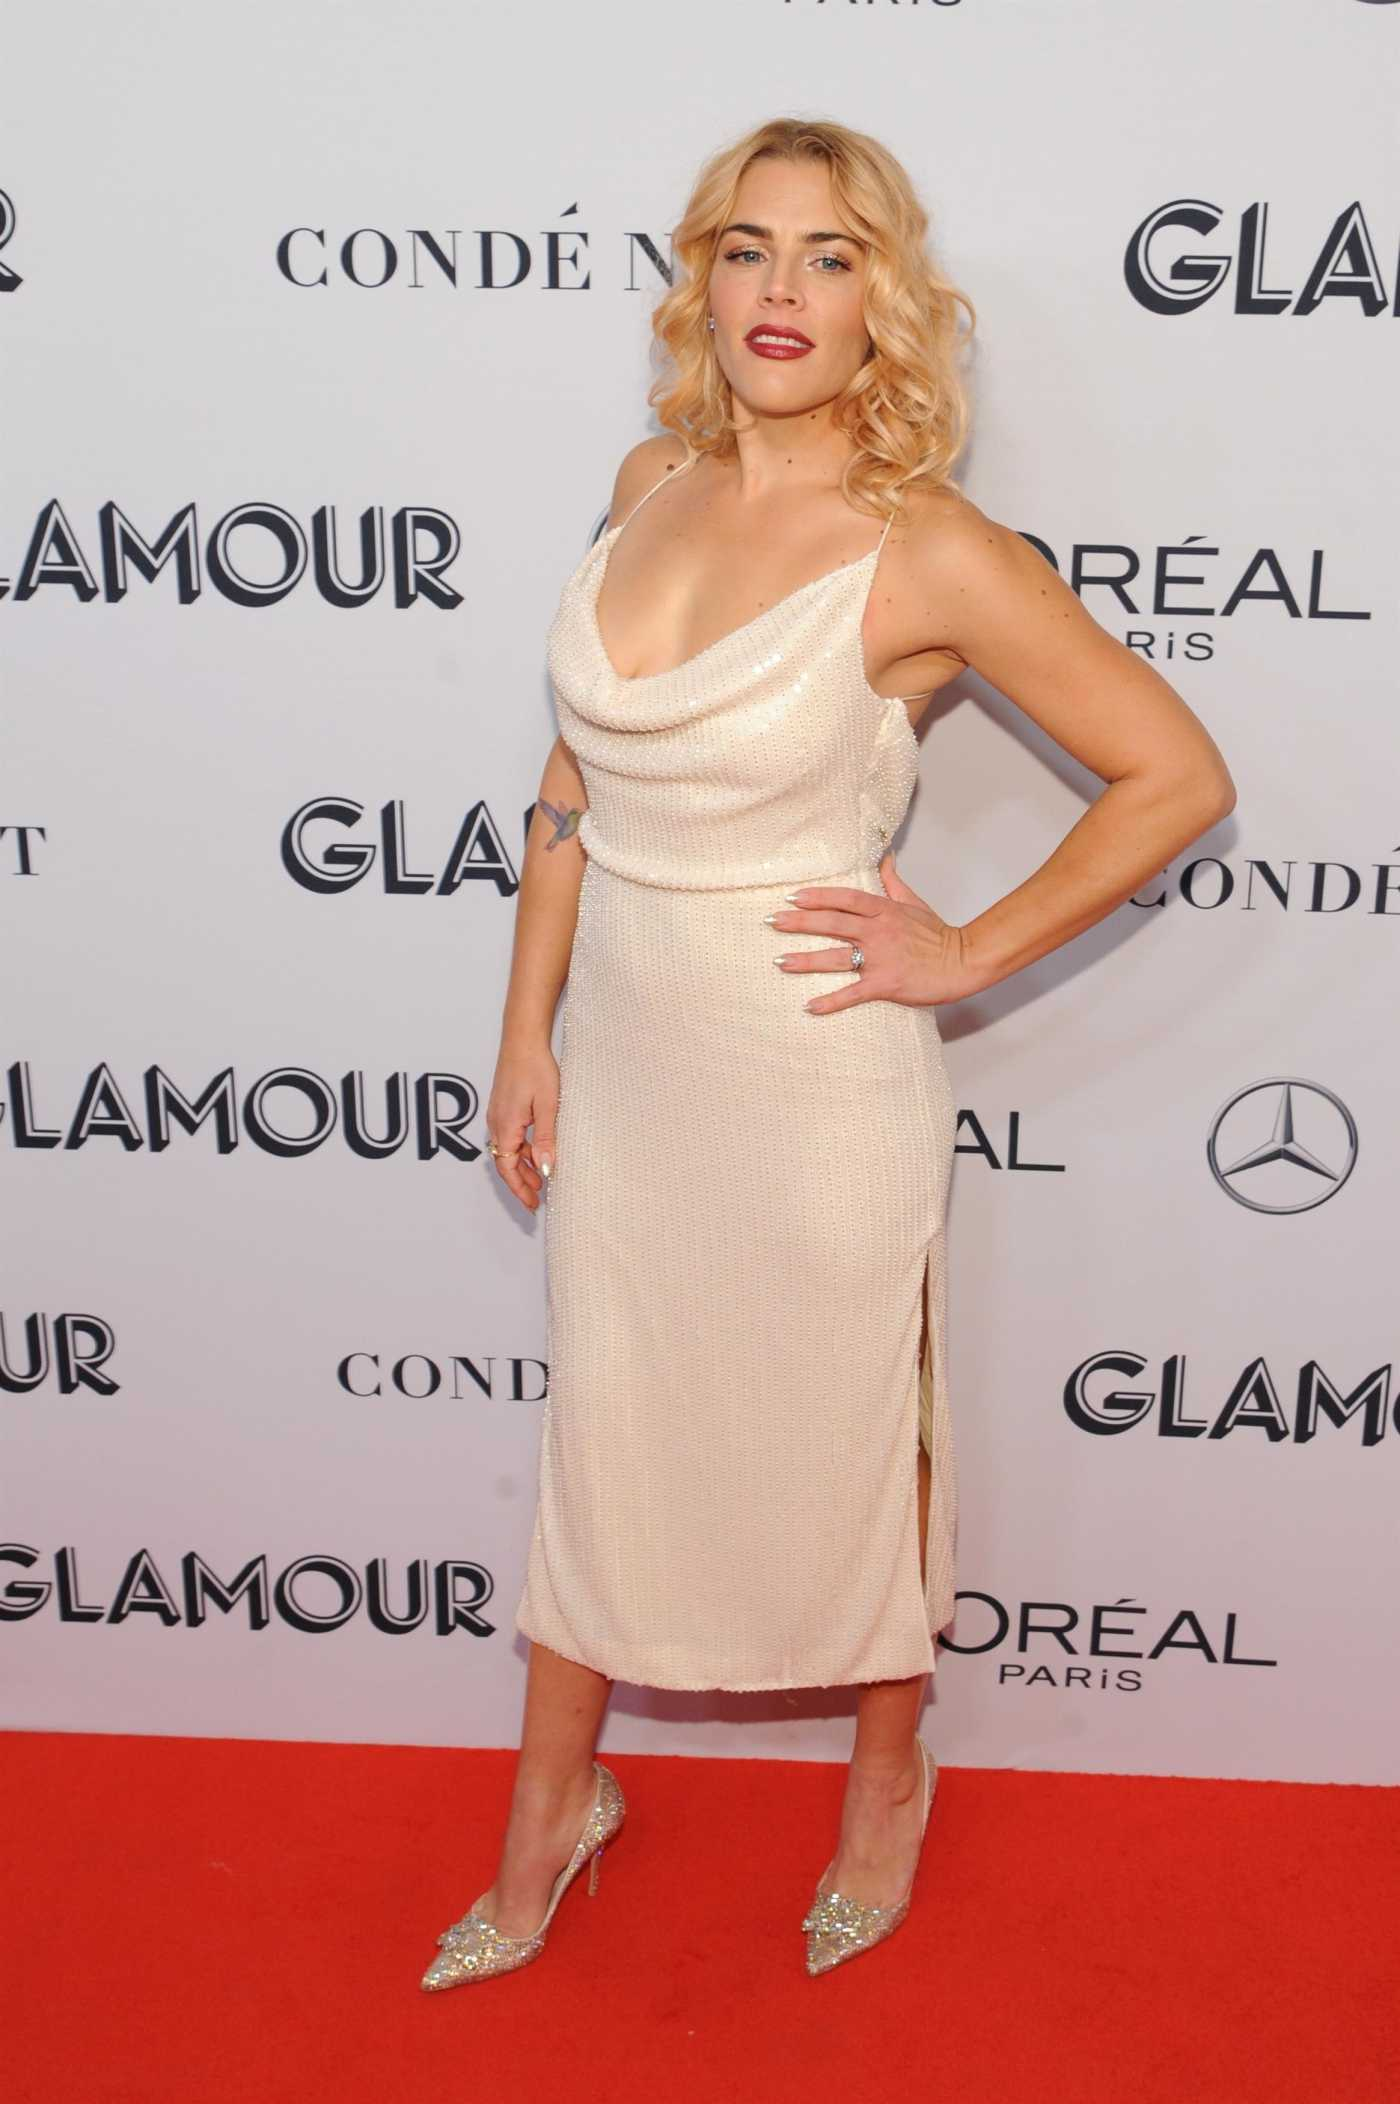 Busy Philipps Attends 2019 Glamour Women of The Year Awards at Alice Tully Center in New York City 11/11/2019